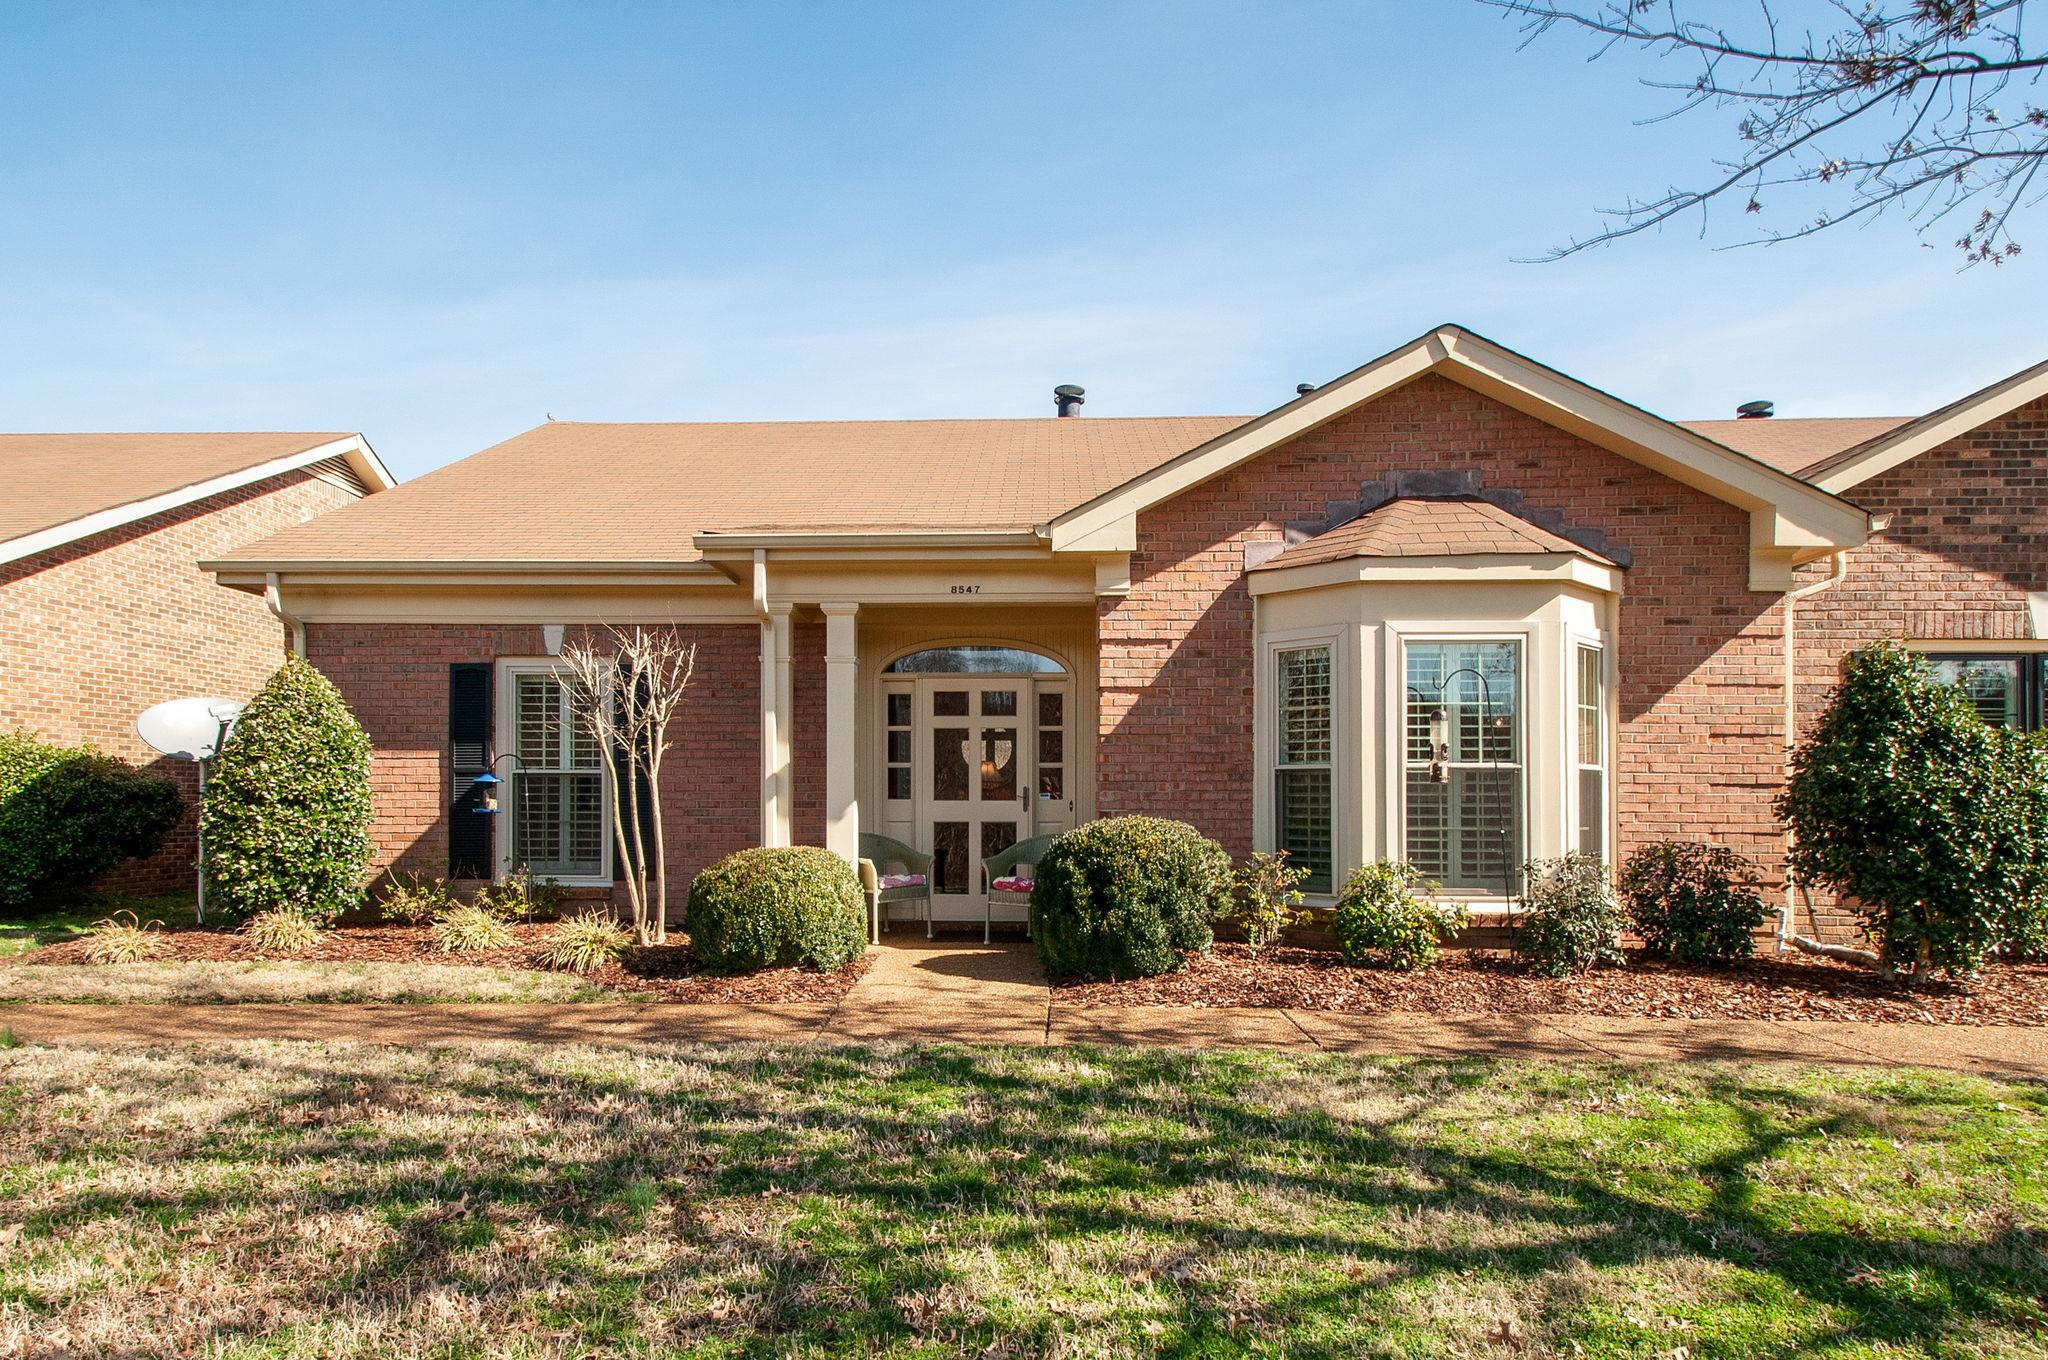 8547 Sawyer Brown Rd, Bellevue in Davidson County County, TN 37221 Home for Sale